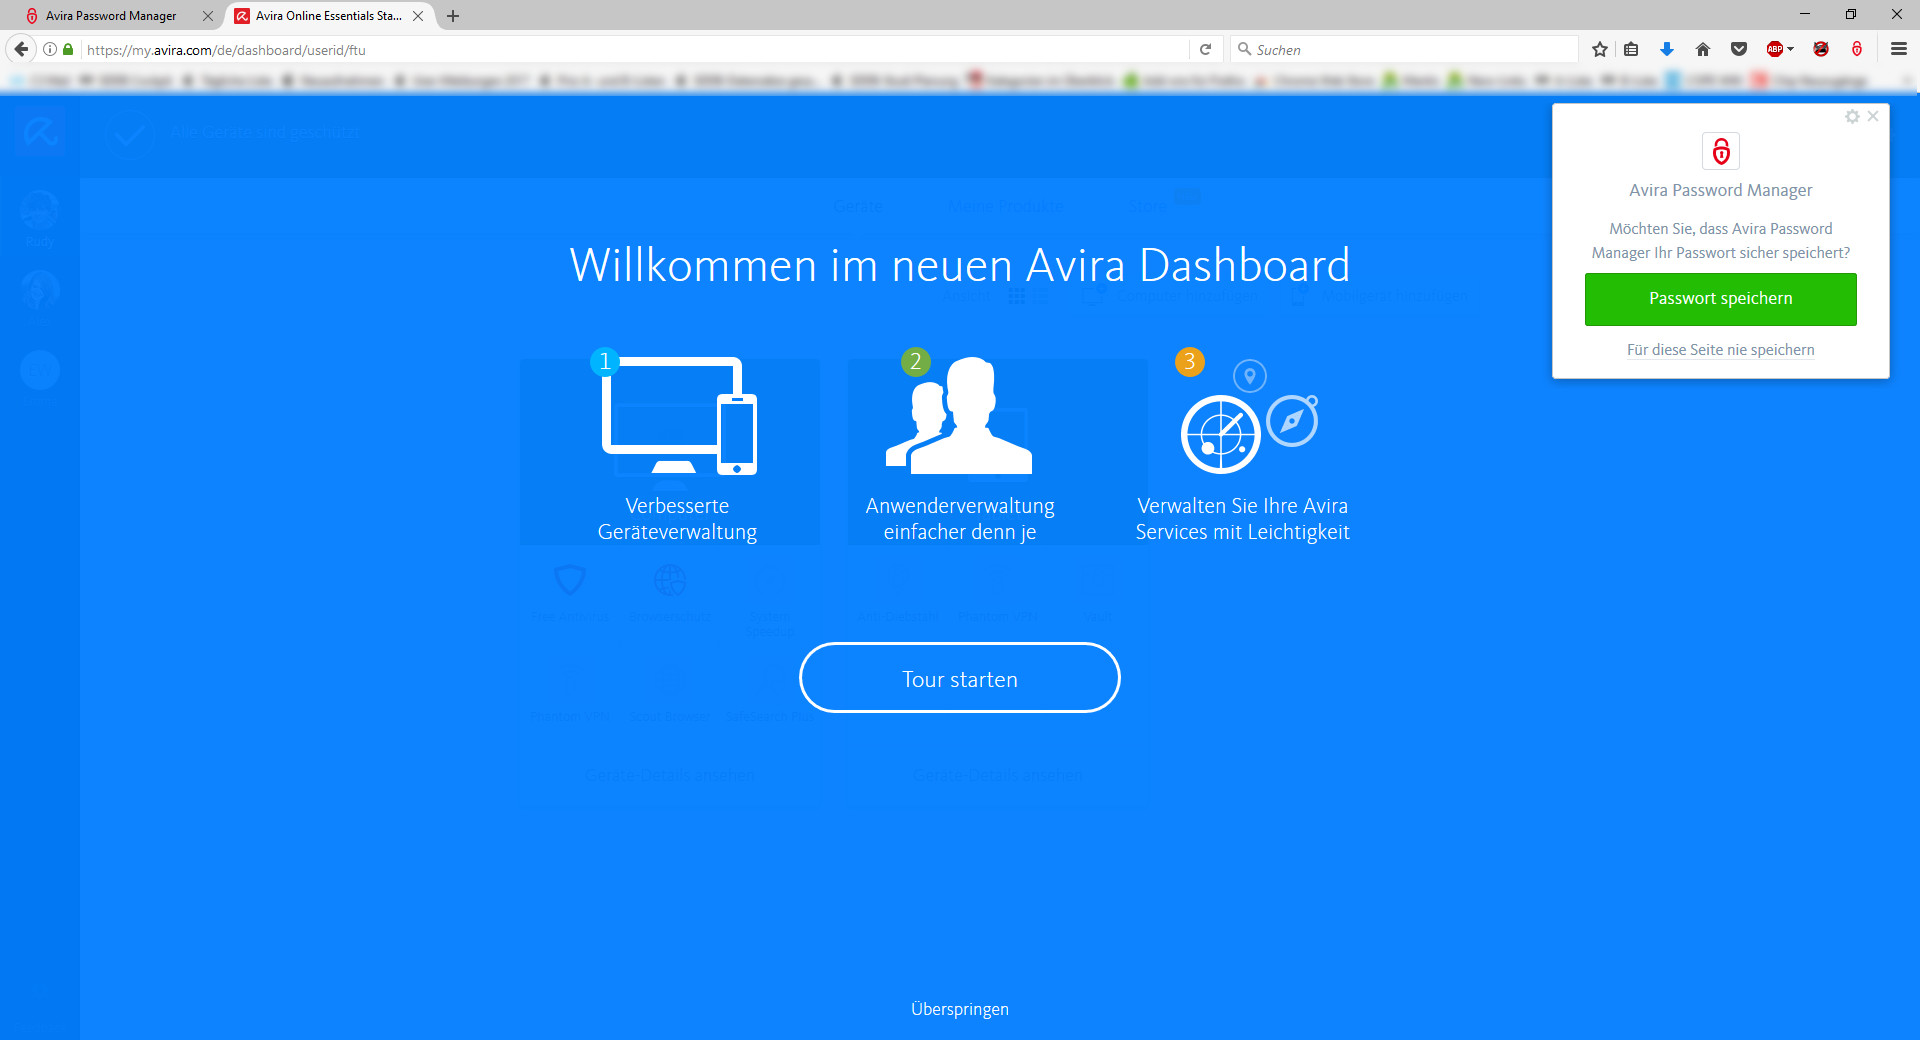 Screenshot 1 - Avira Password Manager für Firefox